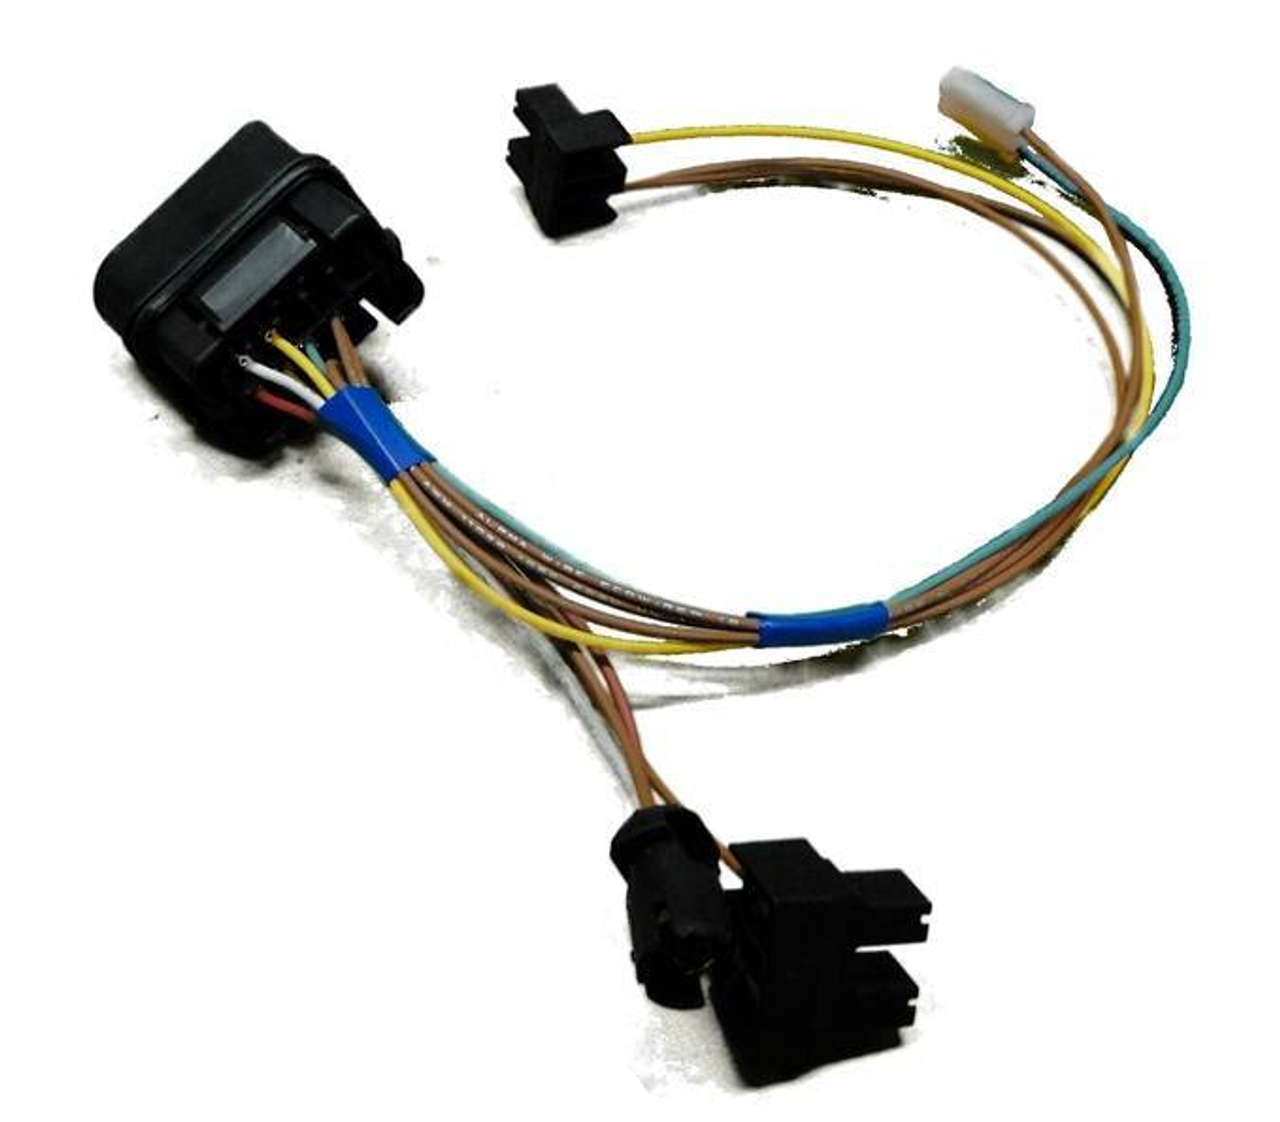 Upgraded Headlight Wiring Harness | VW MK4 Golf | 1 Pack